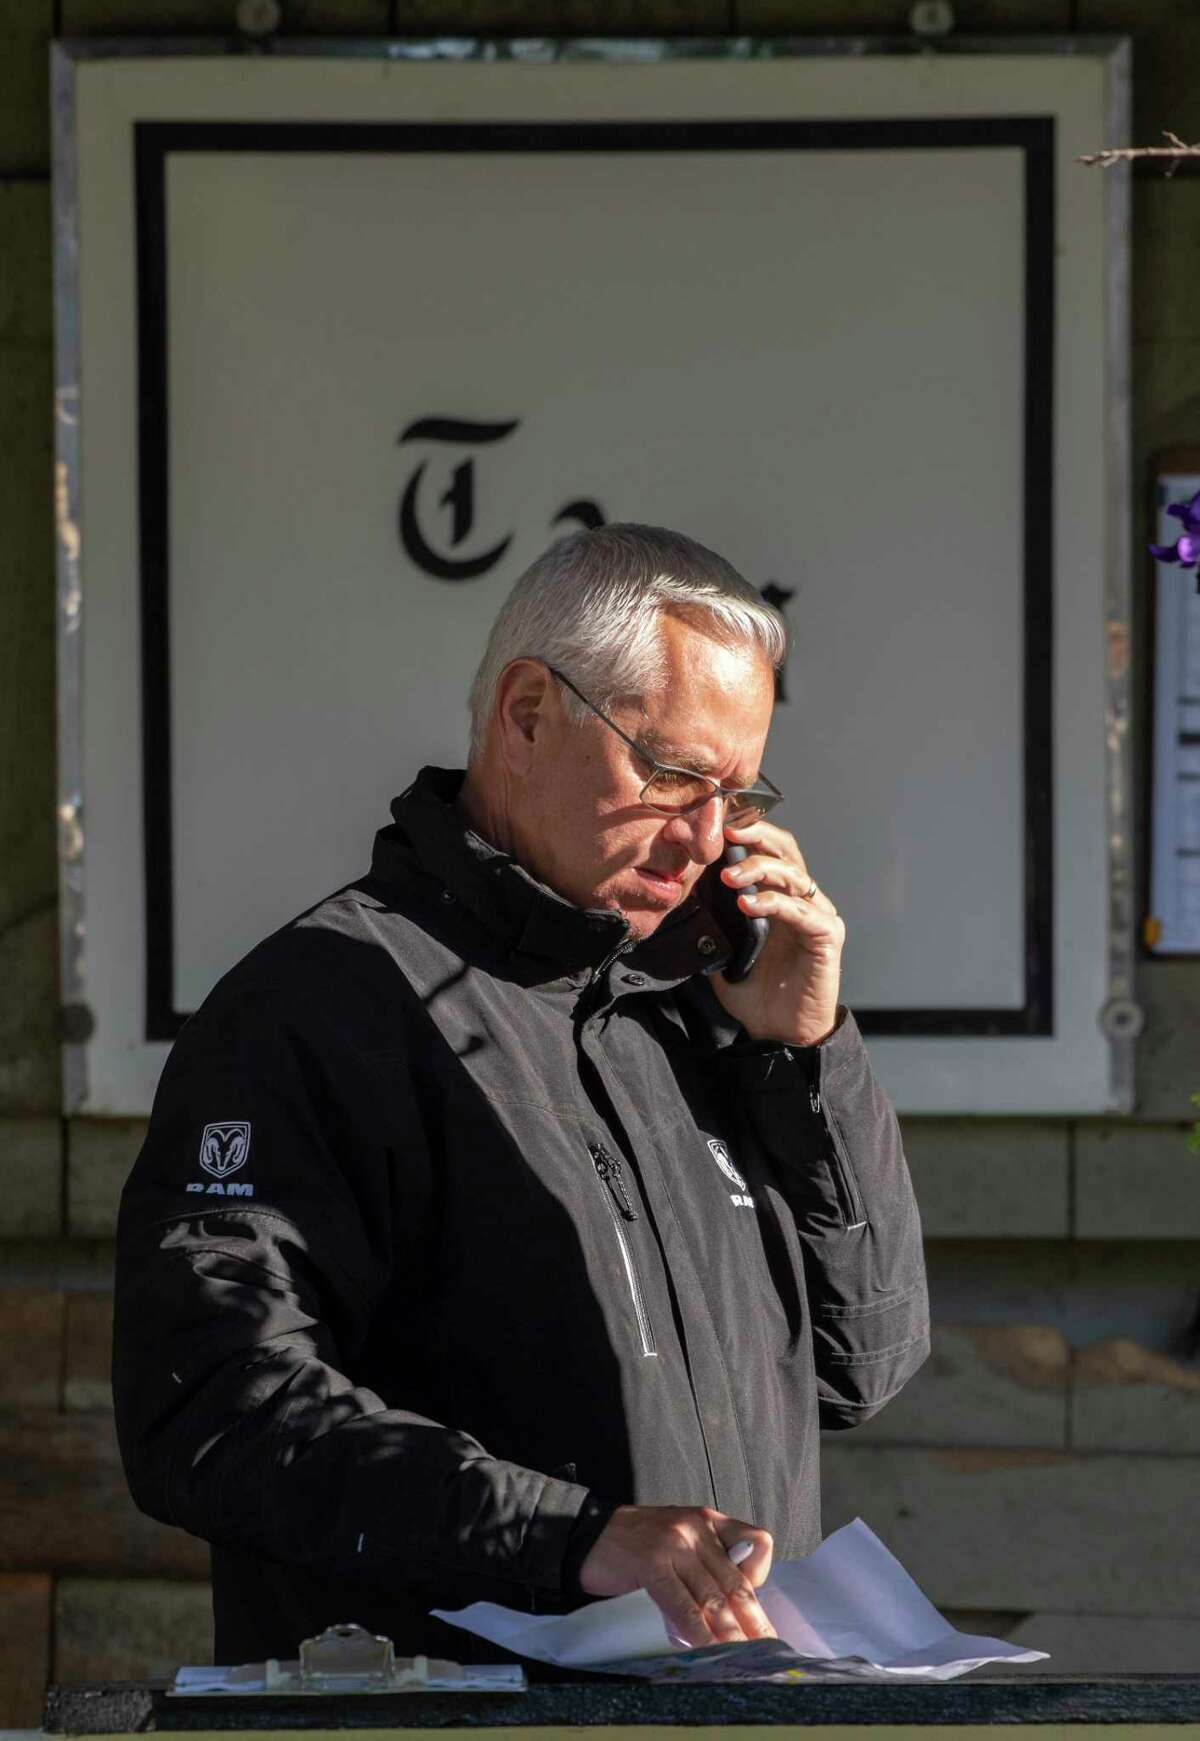 Trainer Todd Pletcher discusses business at the Oklahoma Training Center adjacent to the Saratoga Race Course Friday August 30, 2019 in Saratoga Springs, N.Y. Photo Special to the Times Union by Skip Dickstein